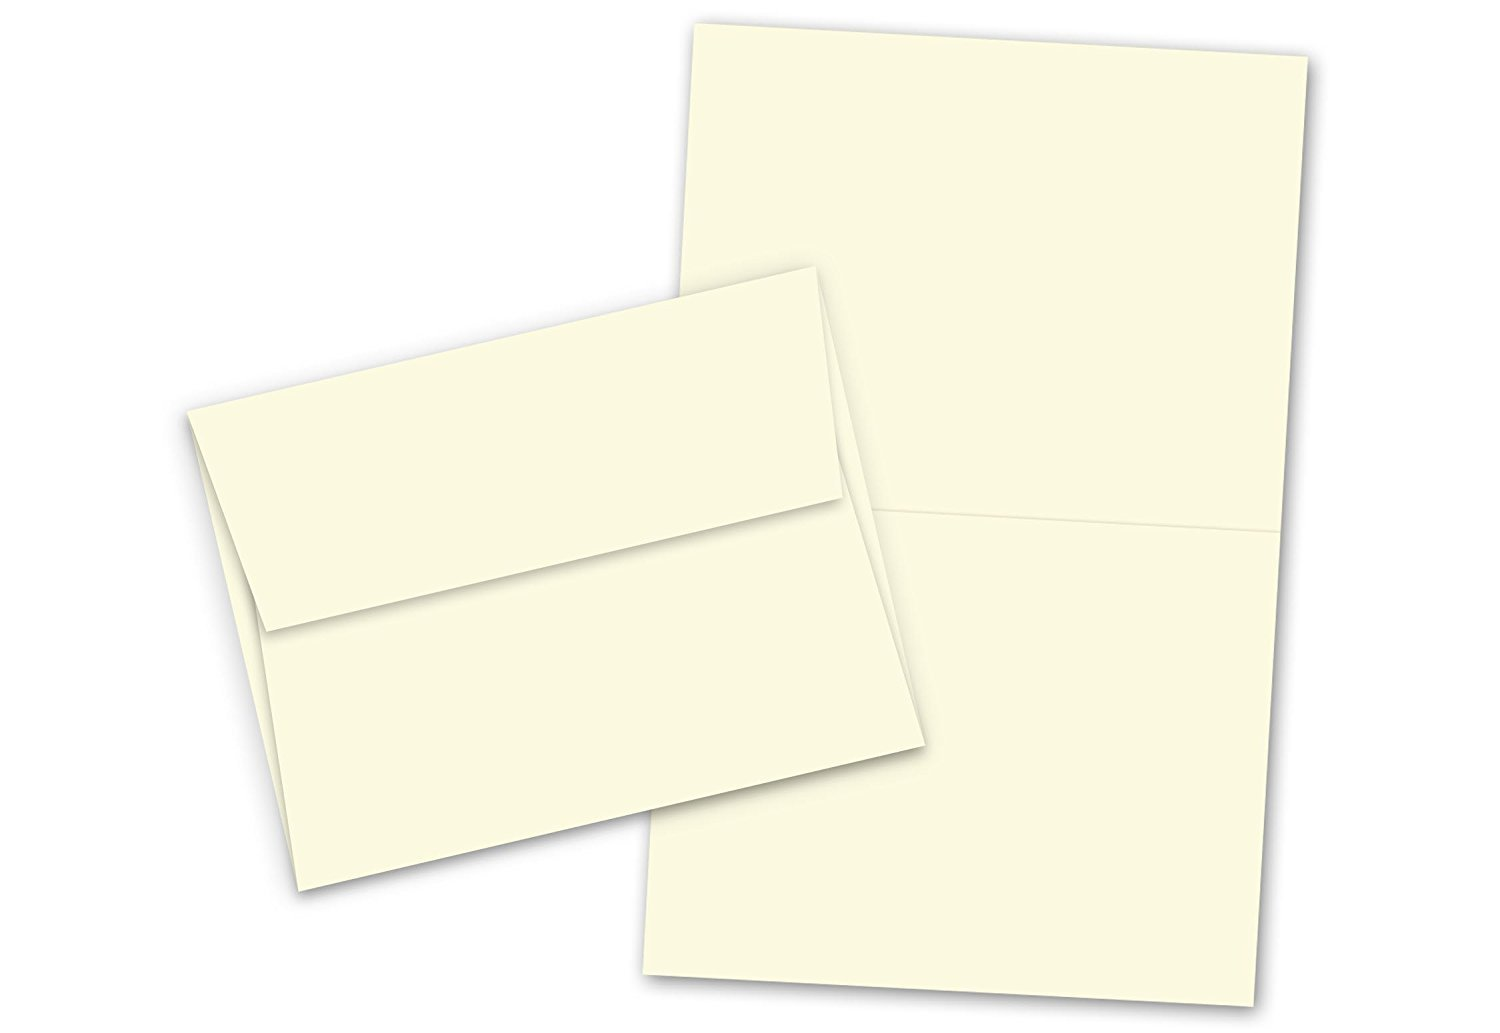 Blank Cream Color |Folding Greeting Card Sets | Card Size: 4 1/4 x 5 1/2 Inches (When Folded) | 50 Cards & 50 Envelopes